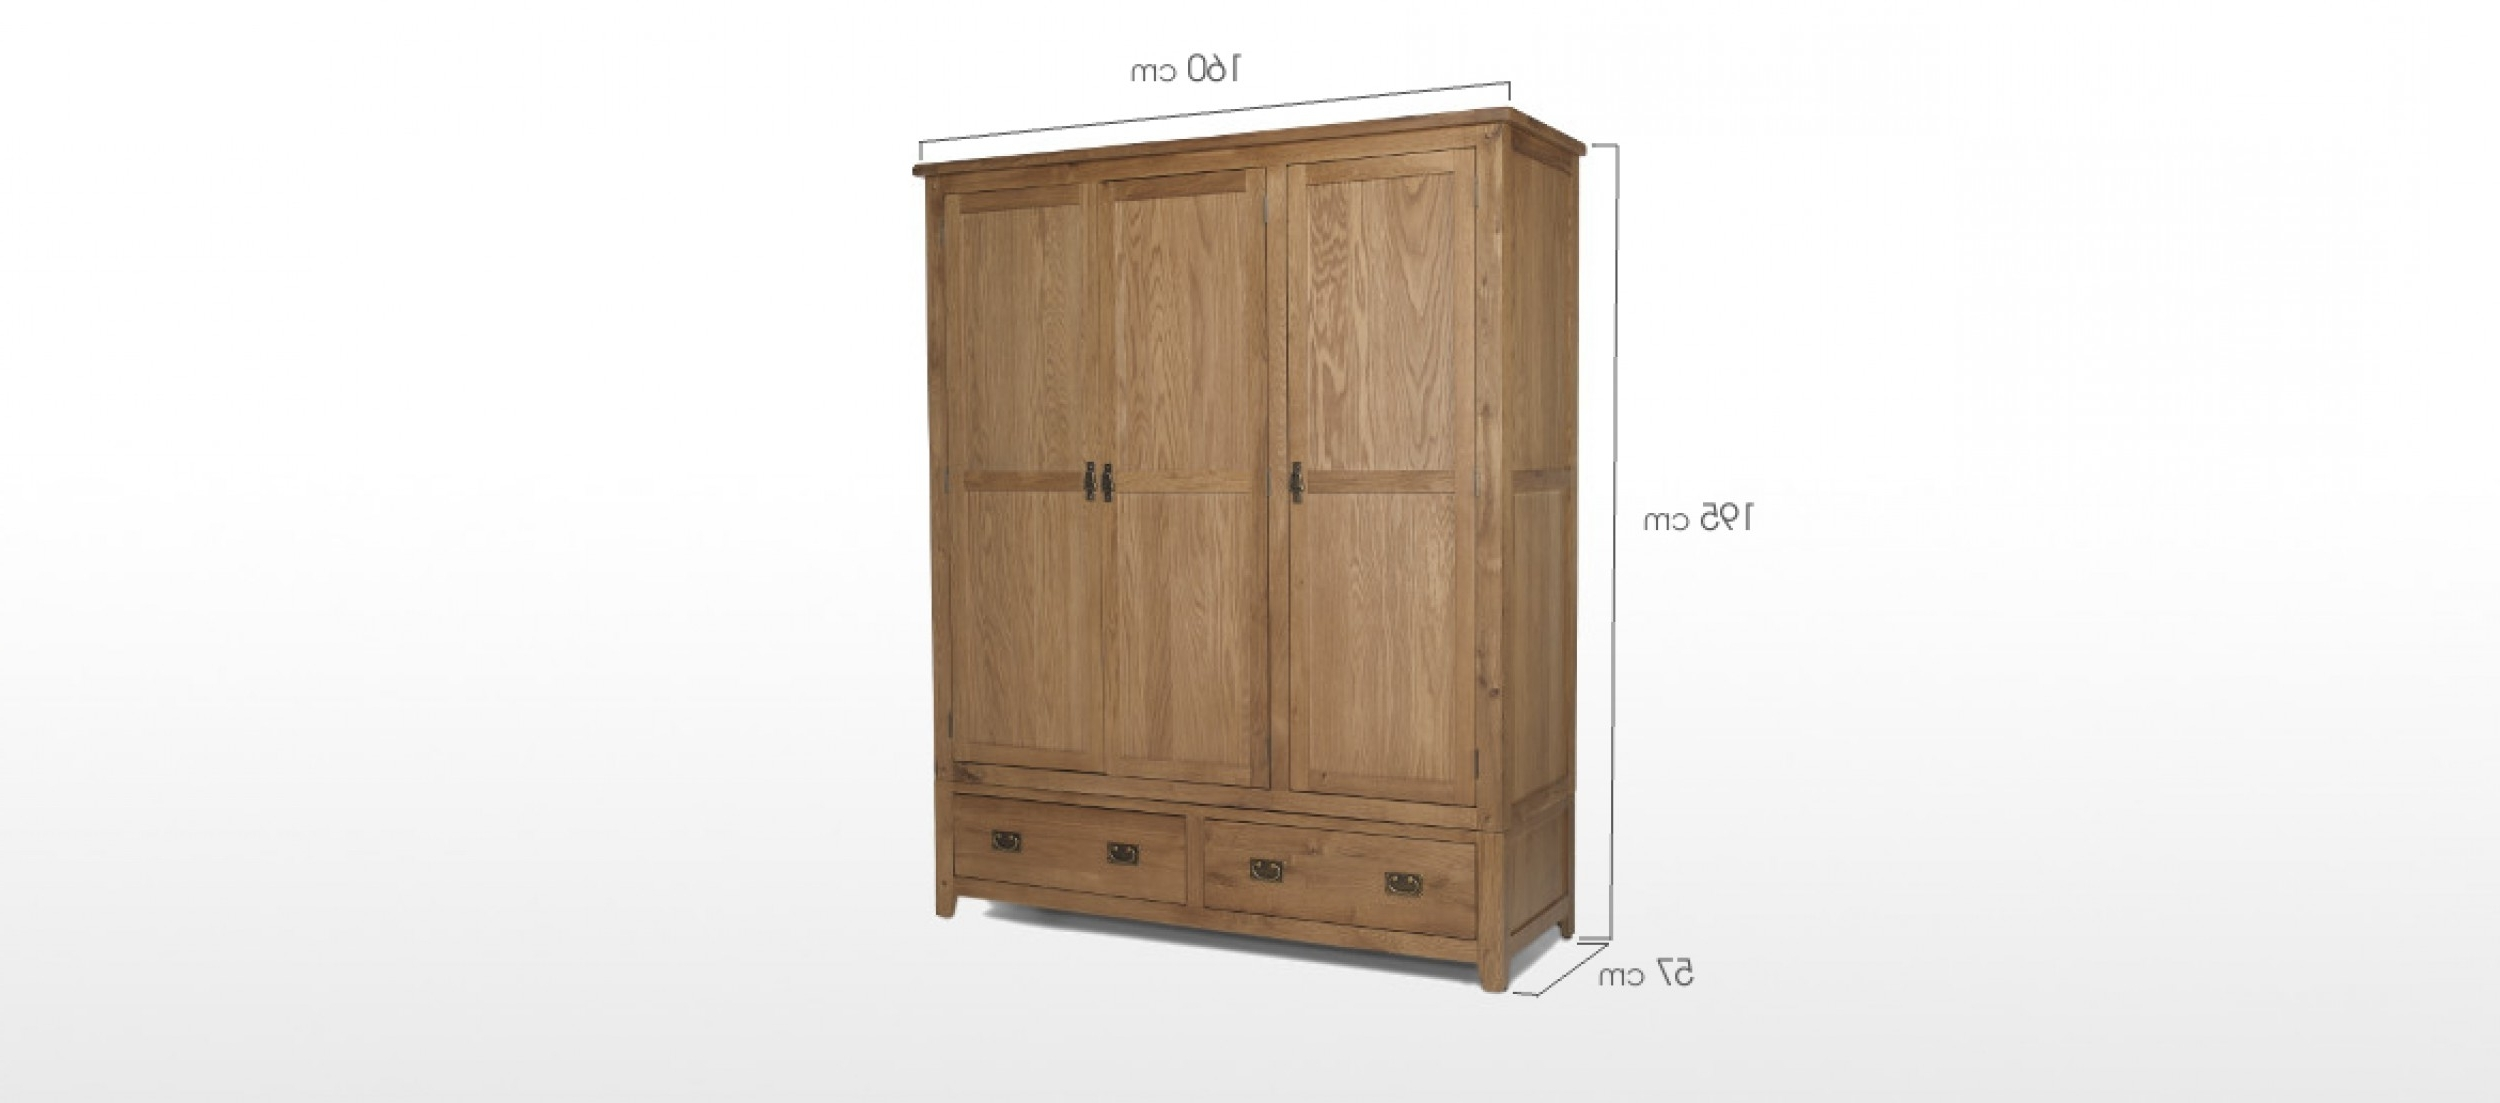 Narrow Wardrobe With Drawers Single Pine Tall Solid Wood This Is Within Newest Single Pine Wardrobes (View 15 of 15)